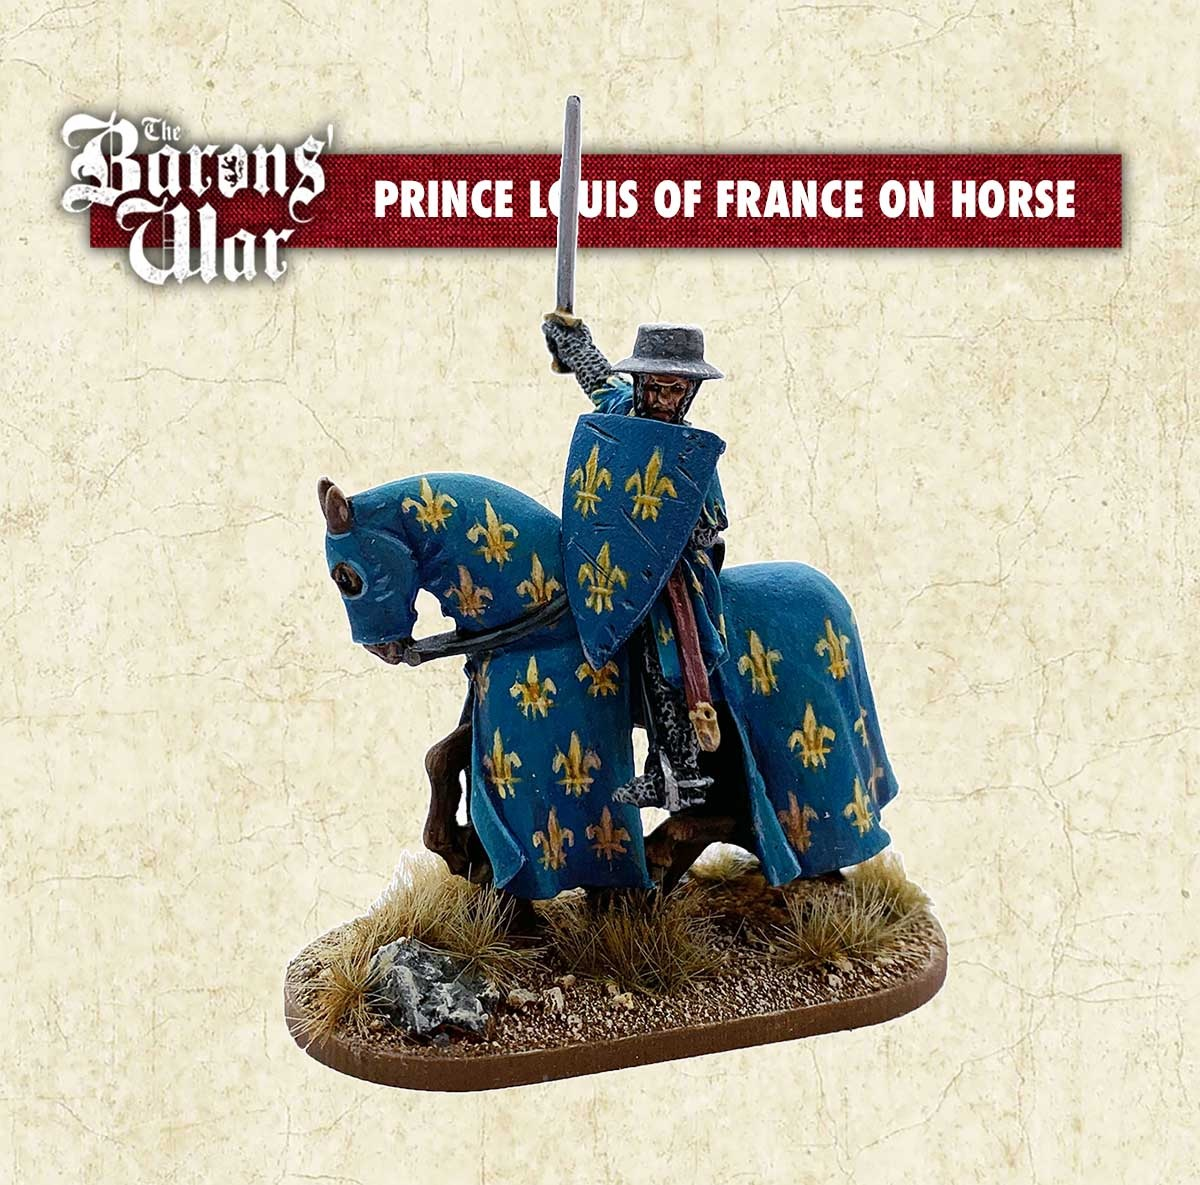 Prince Louis Of France On Horse - Footsore Miniatures & Games